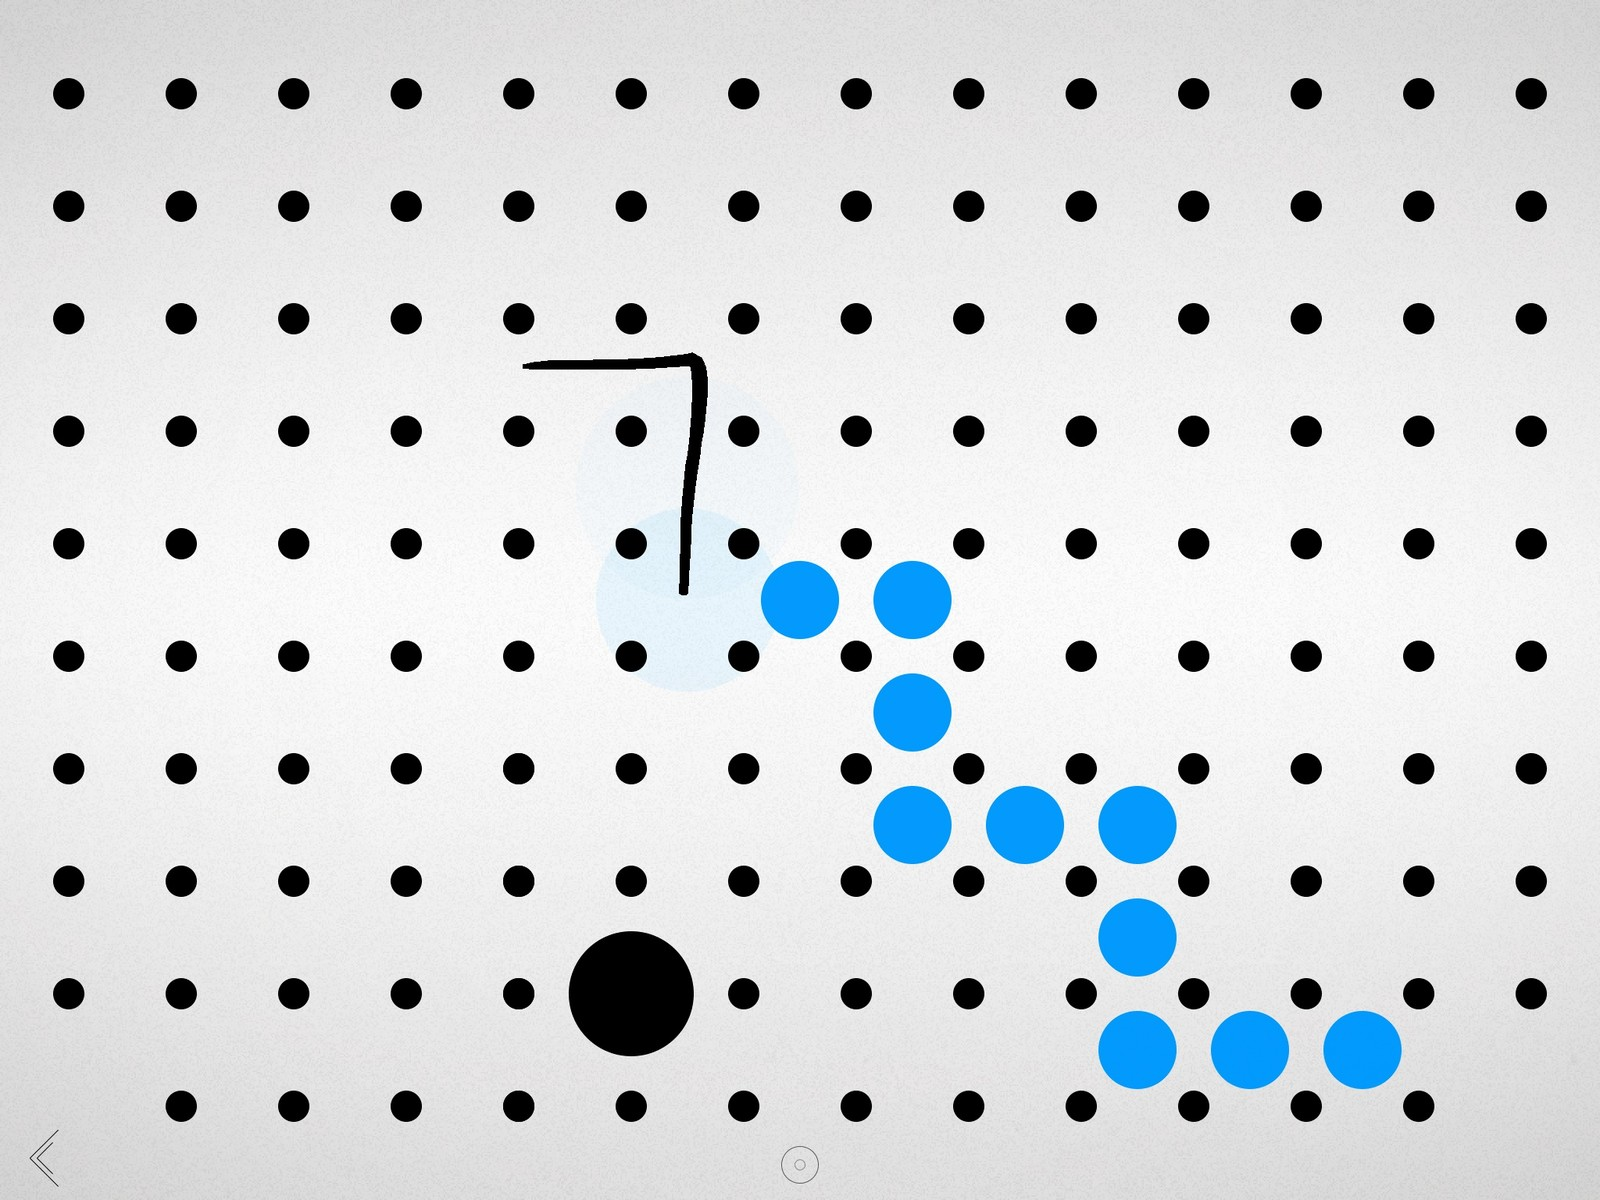 Blek: Top 8 tips, hints, and cheats you need to know!